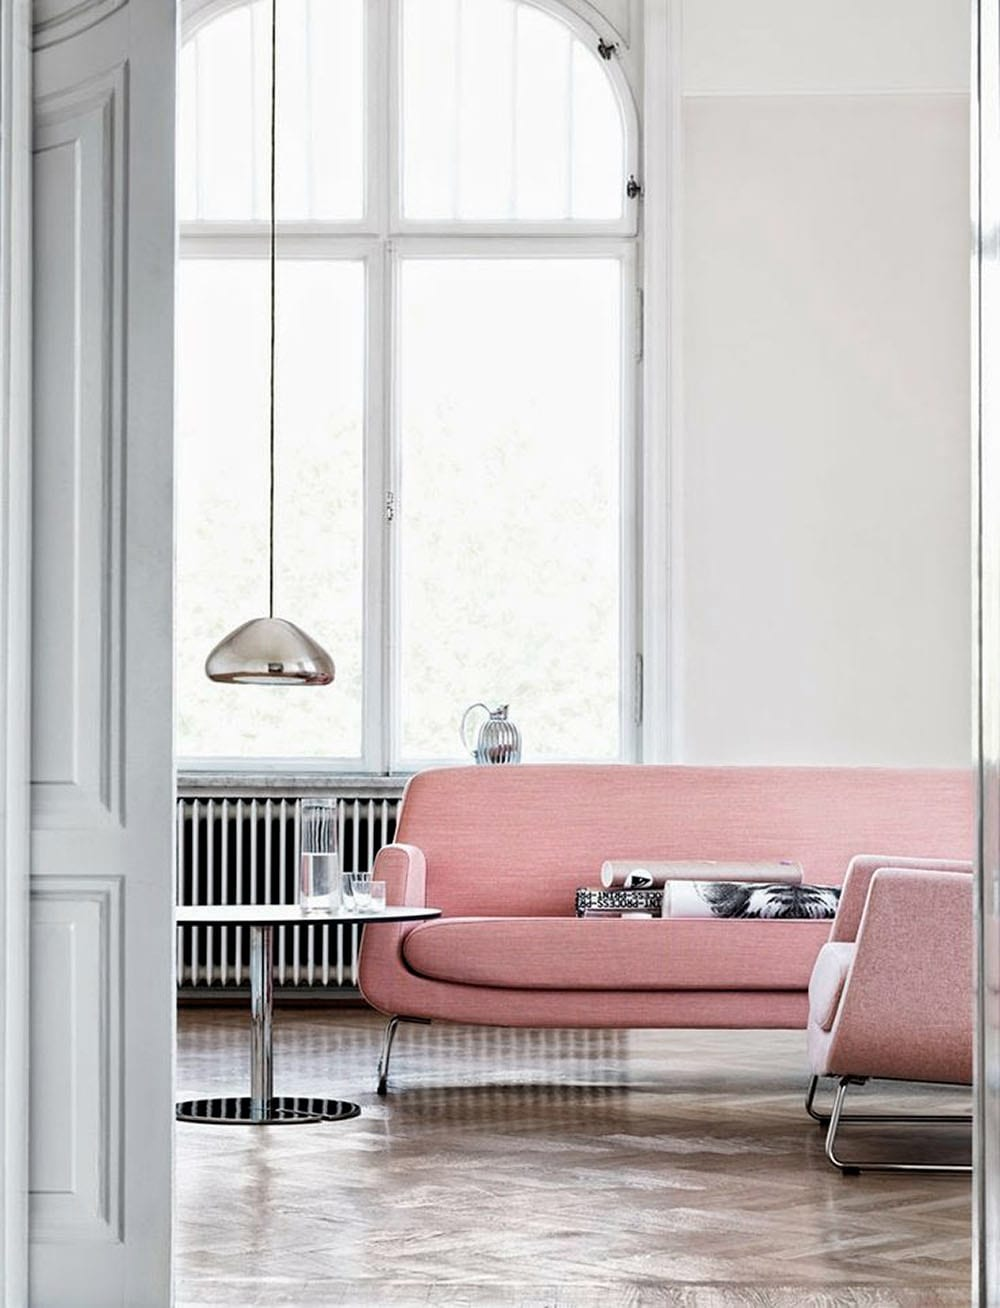 Decorating With Dusty Pink Styleminimalism